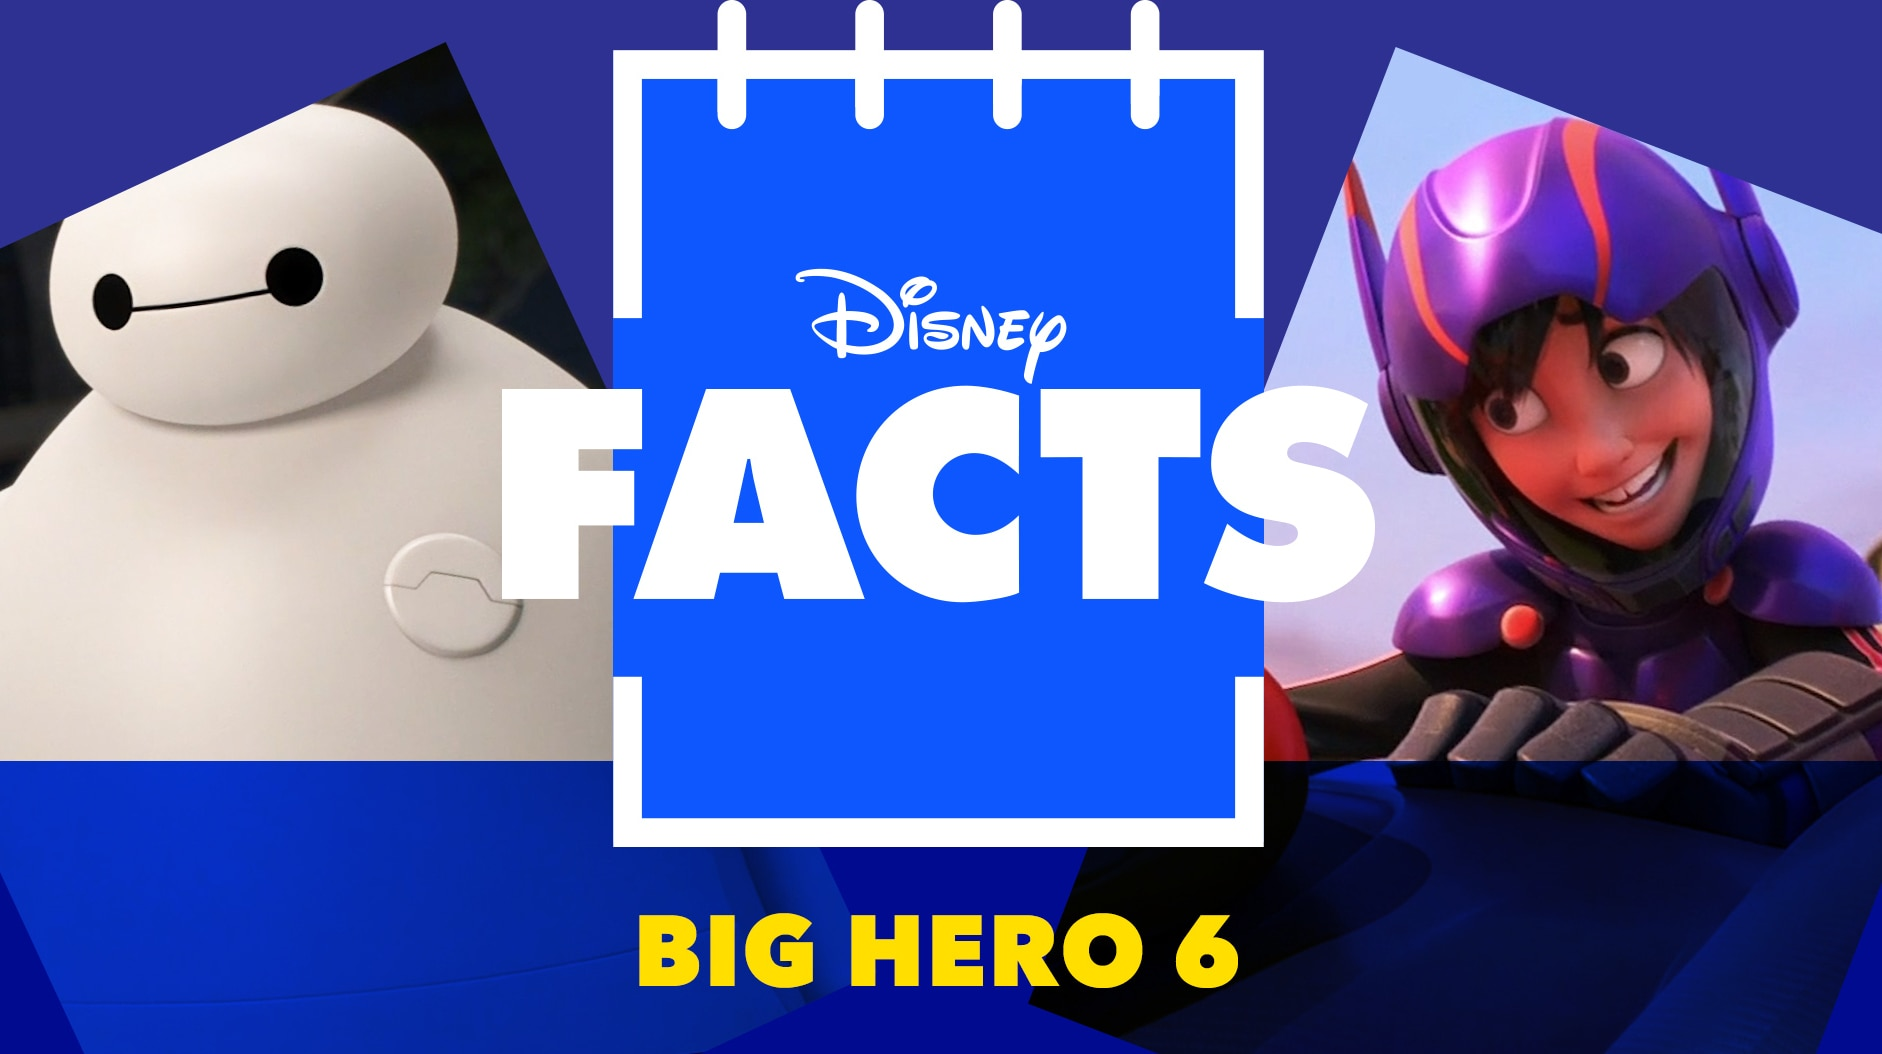 Big Hero 6 Secrets & Easter Eggs | Disney Facts by Disney